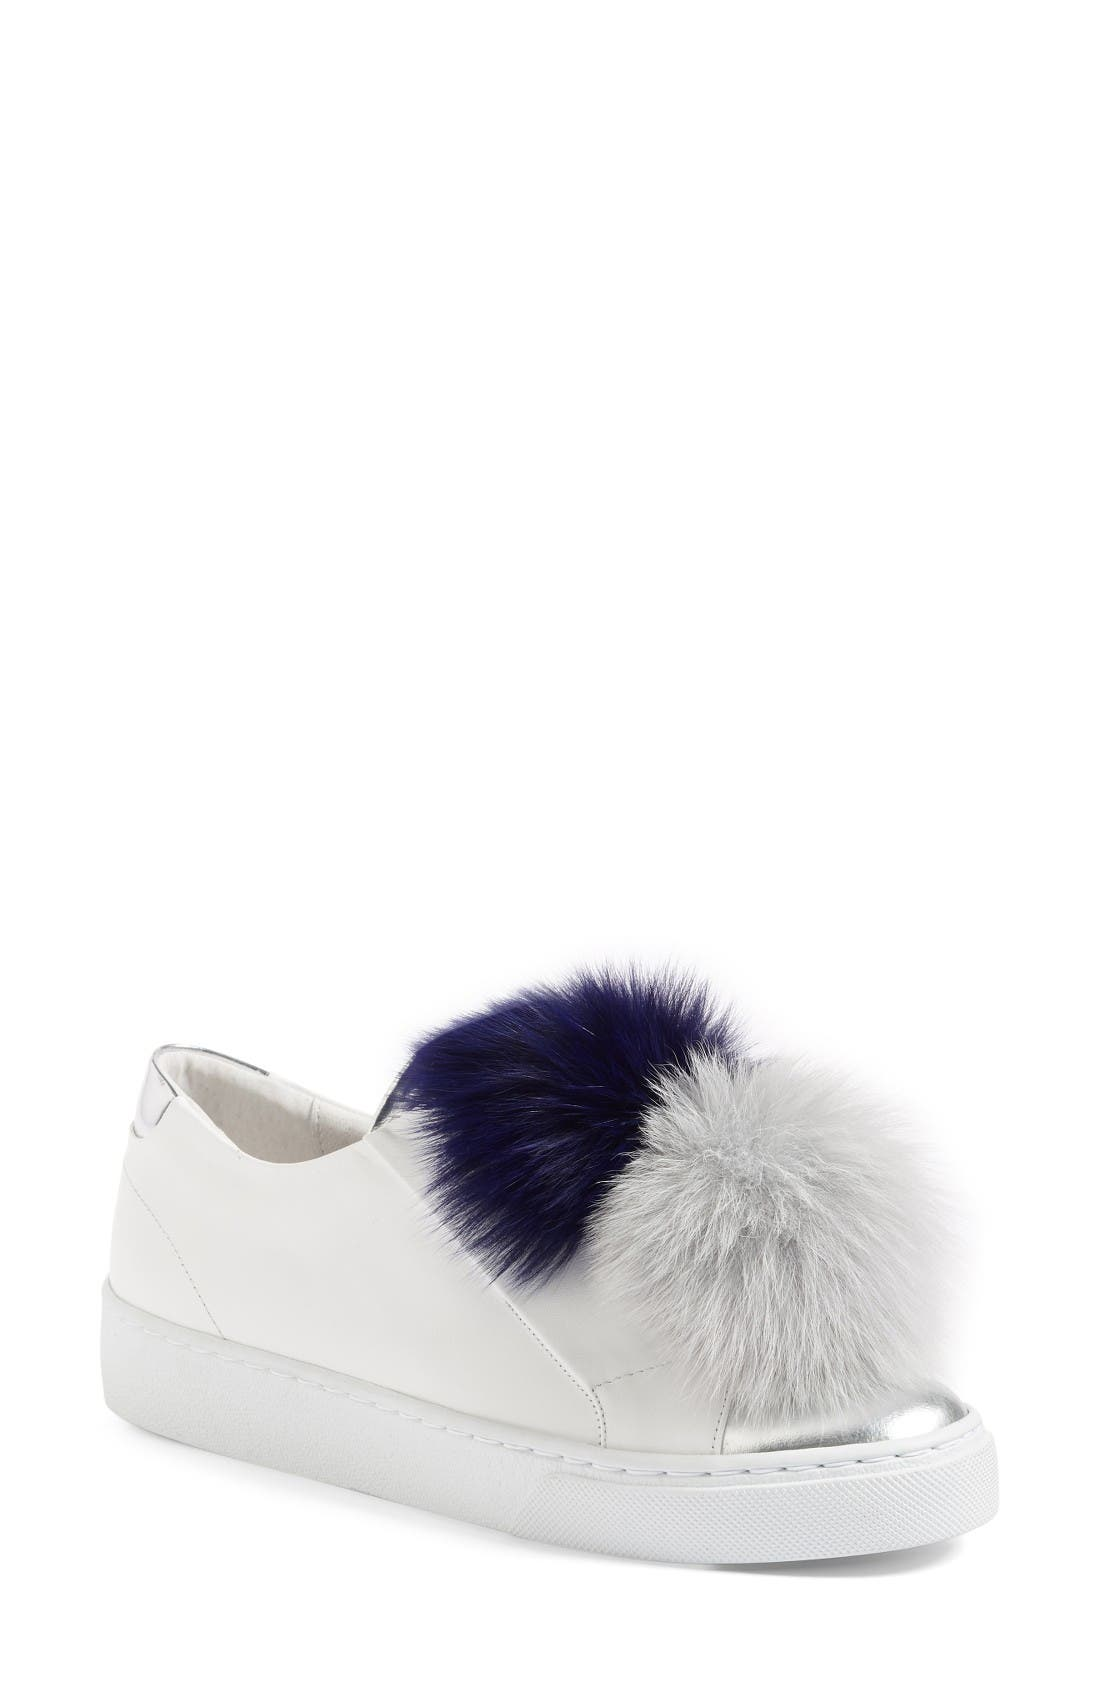 cheap official Here/Now Arian Fox Fur Sneakers free shipping fast delivery n3445H2RN